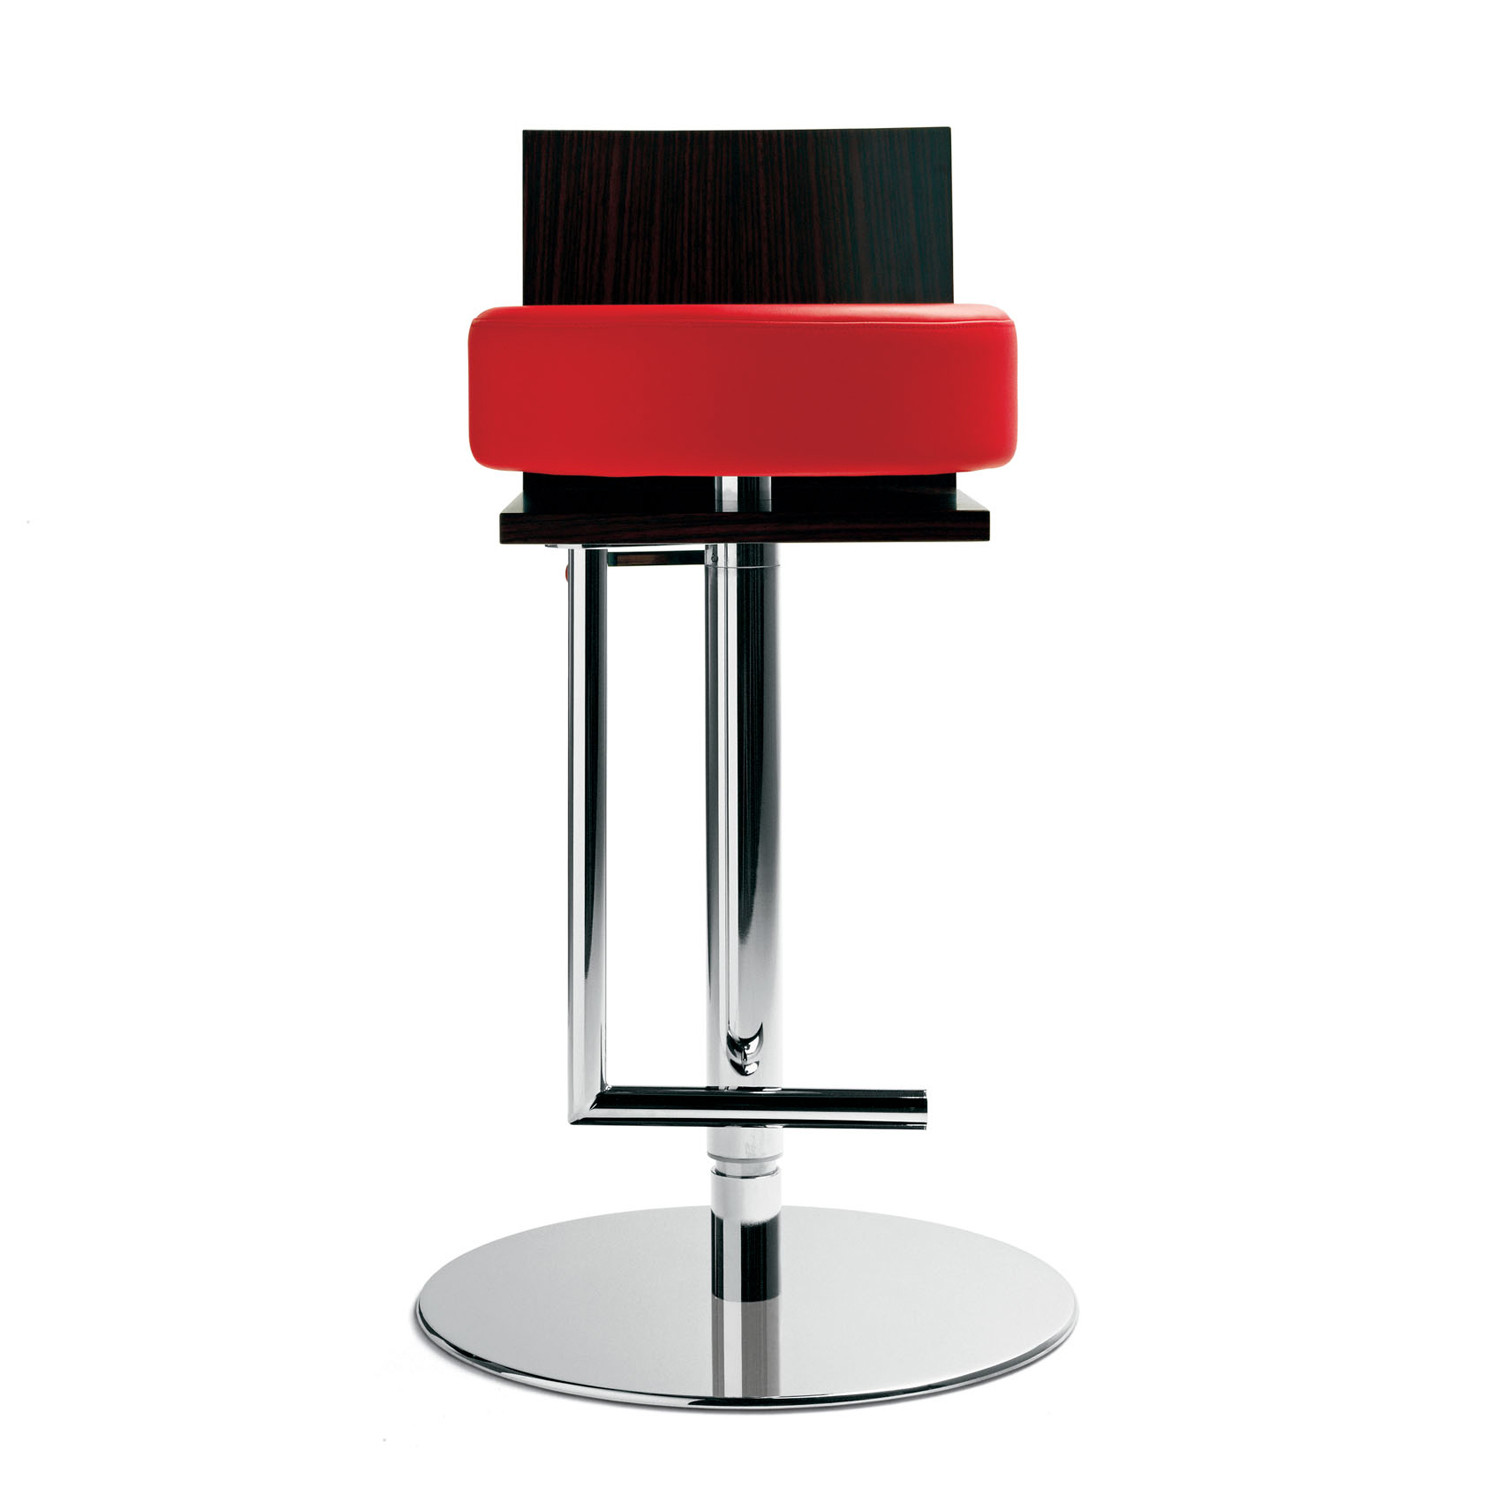 Le Spighe Bar Stool from Poltrona Frau